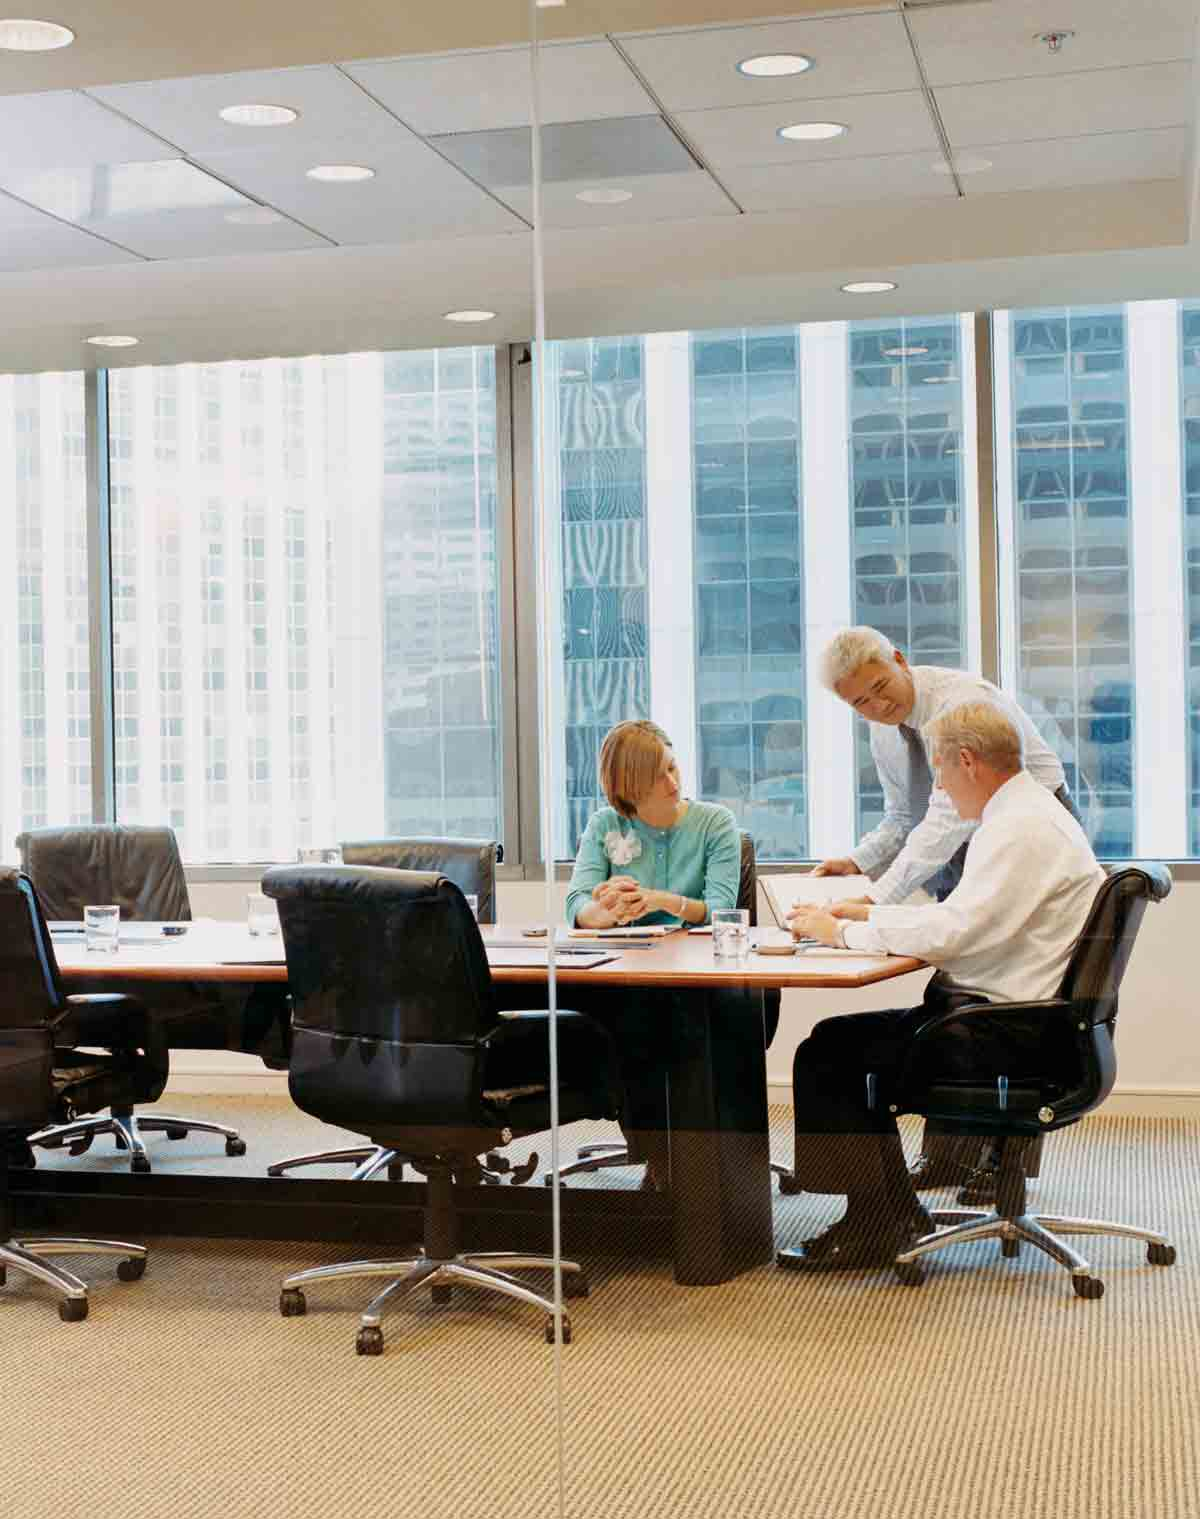 people sitting around a table in an office